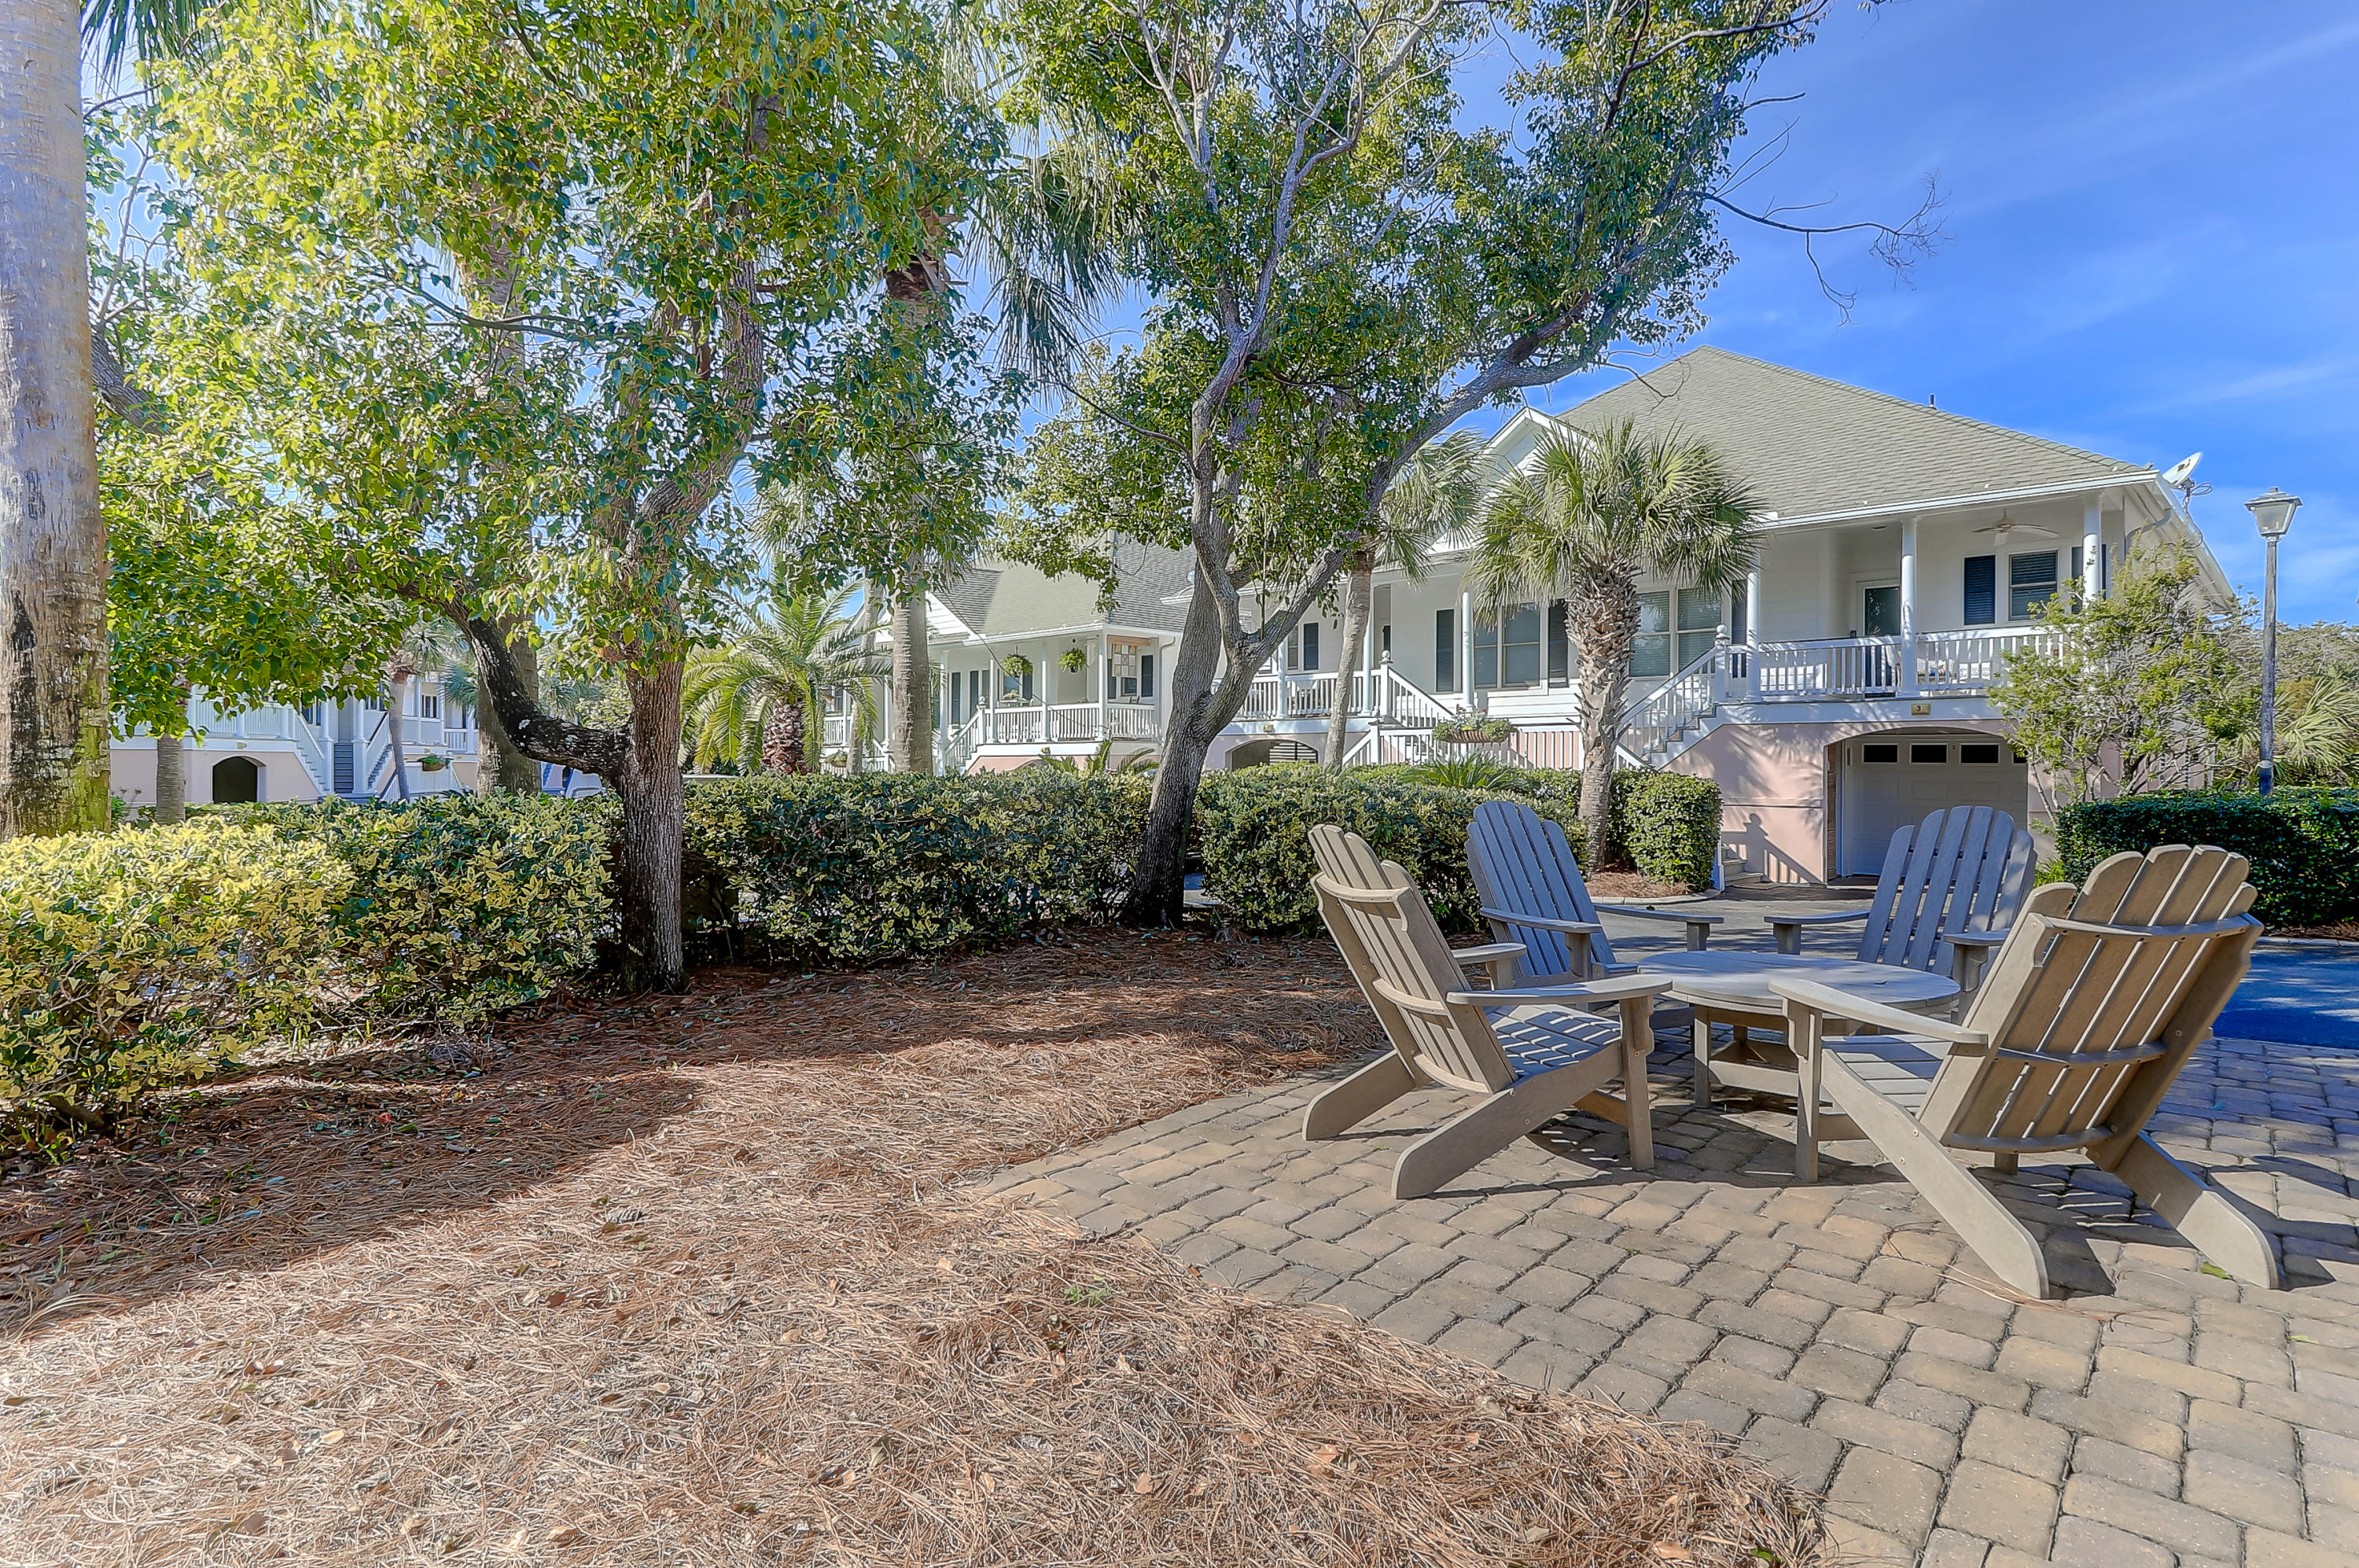 Wild Dunes Resort Homes For Sale - 5 Links Clubhouse, Isle of Palms, SC - 3